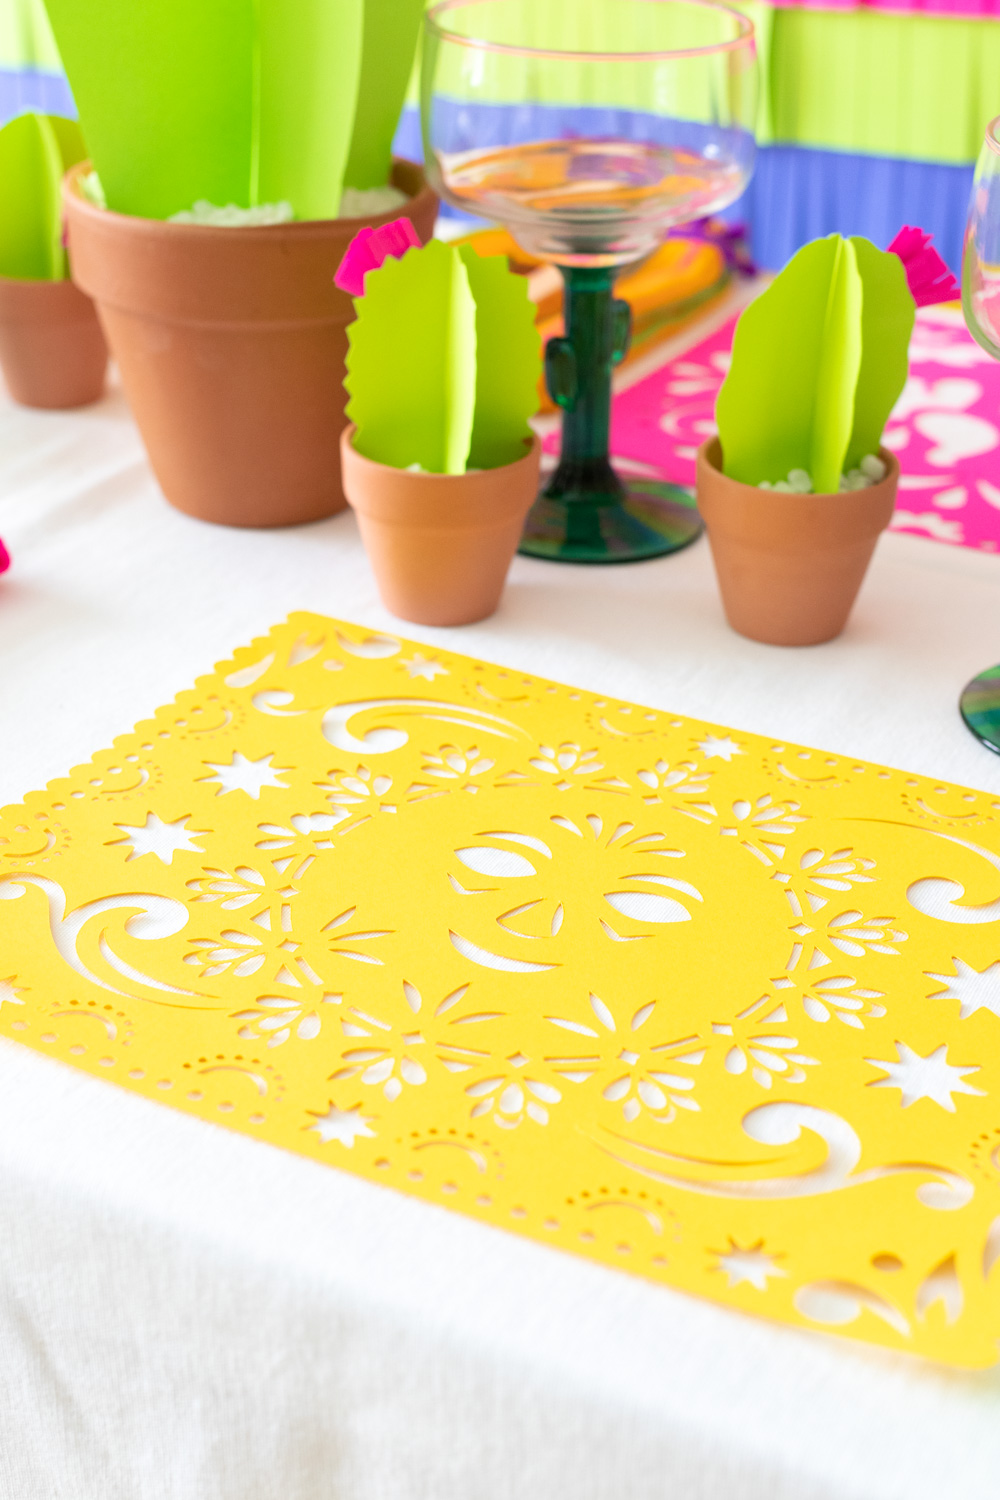 papel picado placemat design on white tablecloth with paper cacti